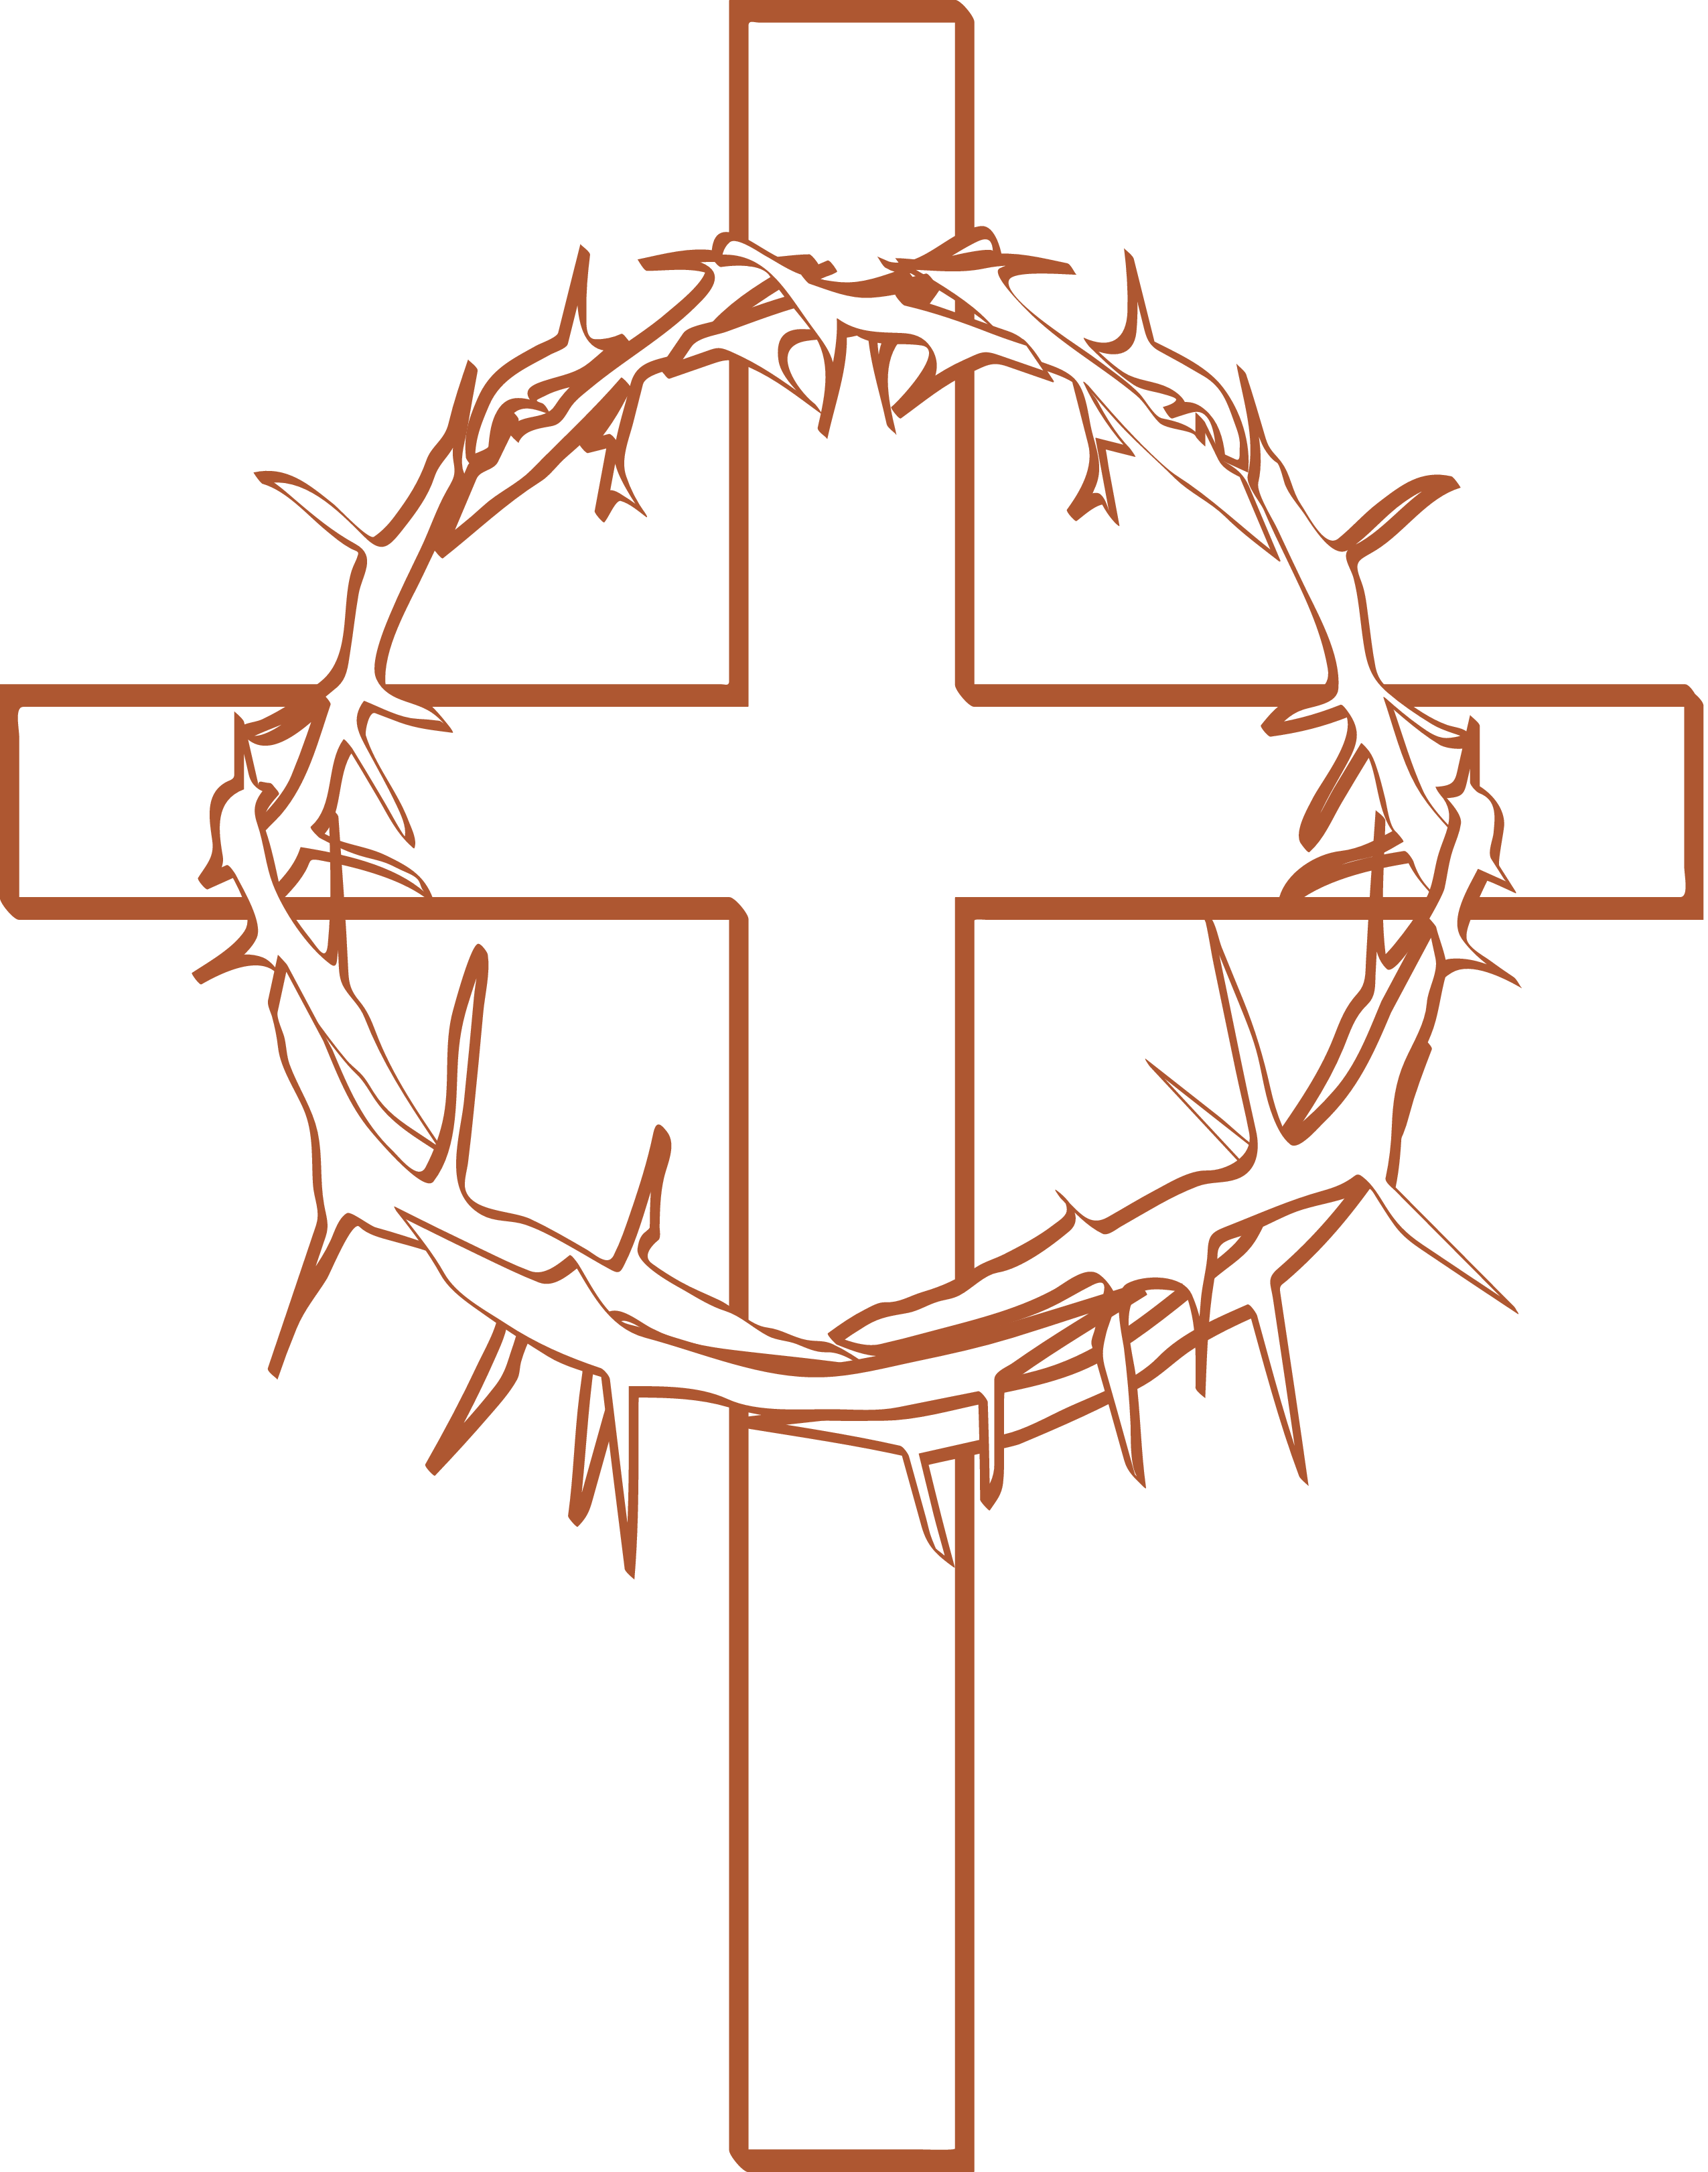 Cross with crown of thorns clipart image royalty free Calvary Crown of thorns Cross and Crown Christian cross Clip art ... image royalty free